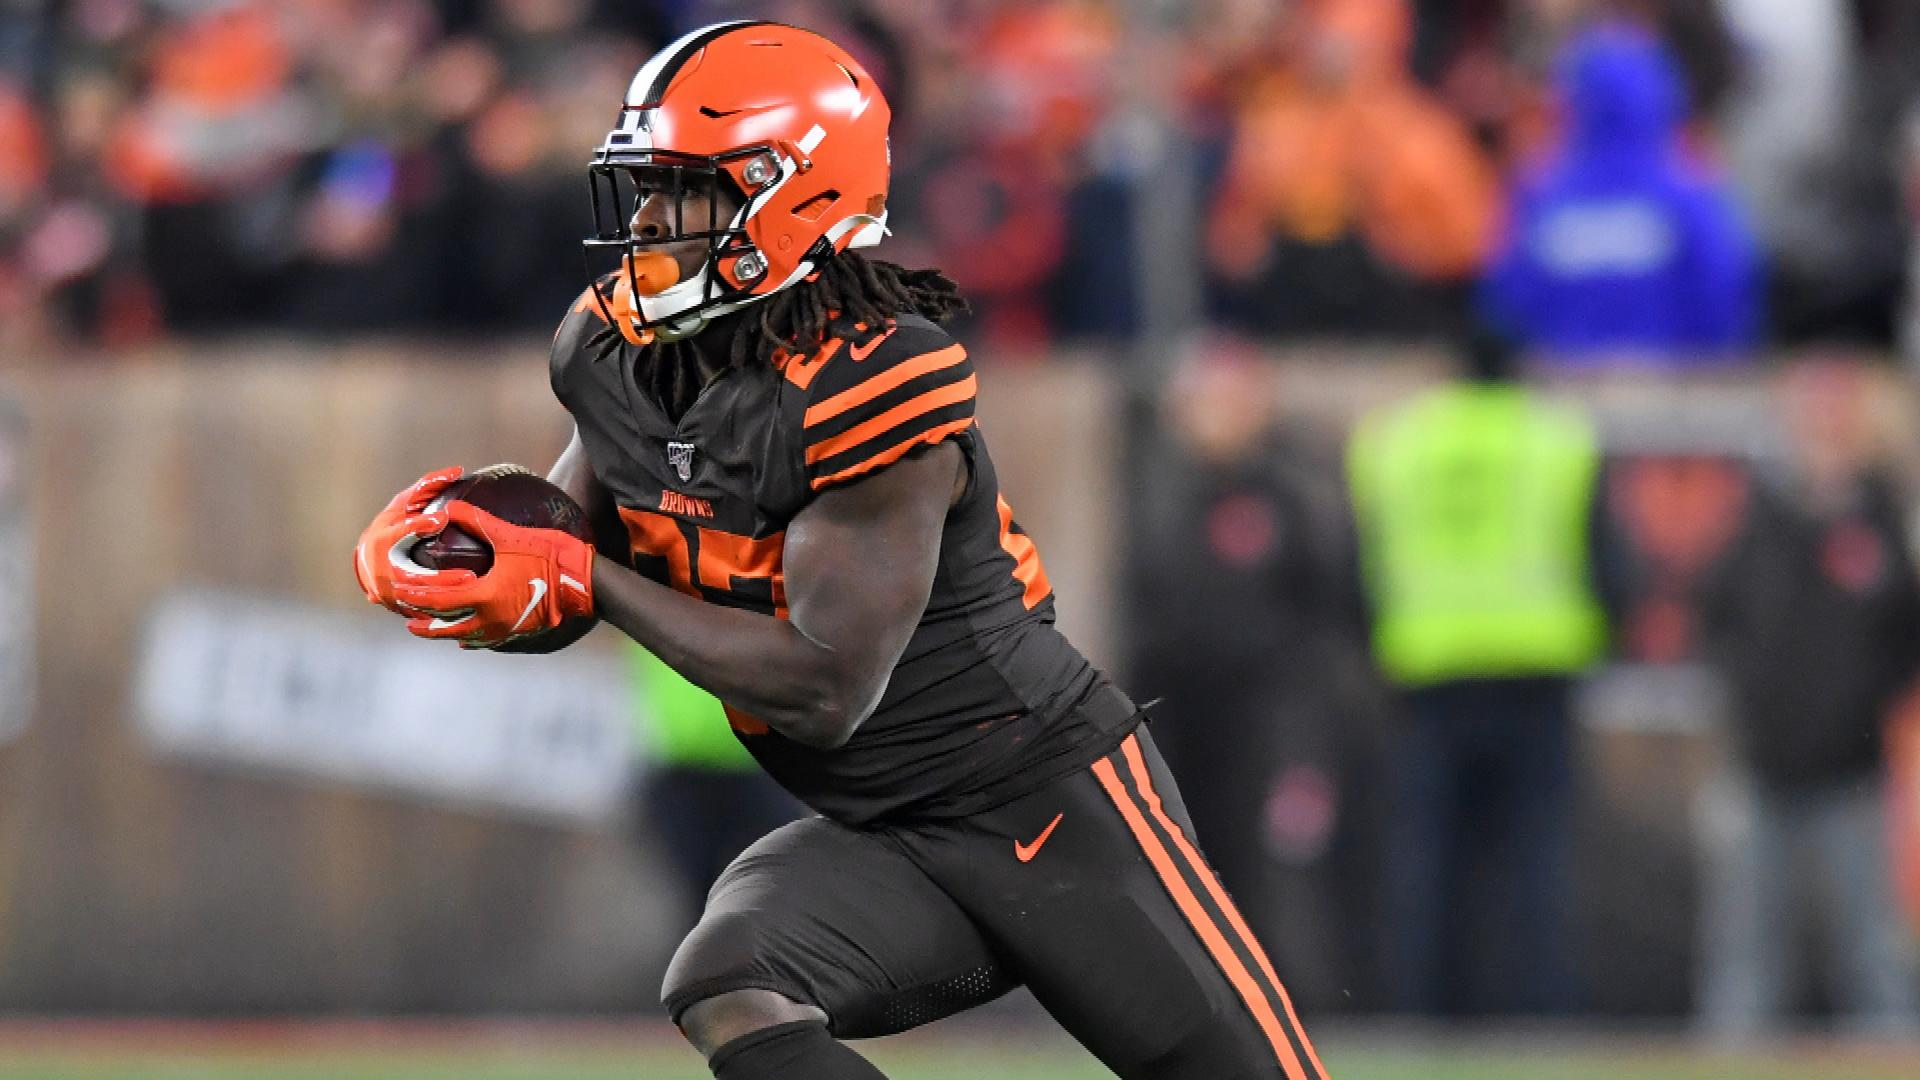 Browns RB Kareem Hunt is good DFS play vs. Dolphins